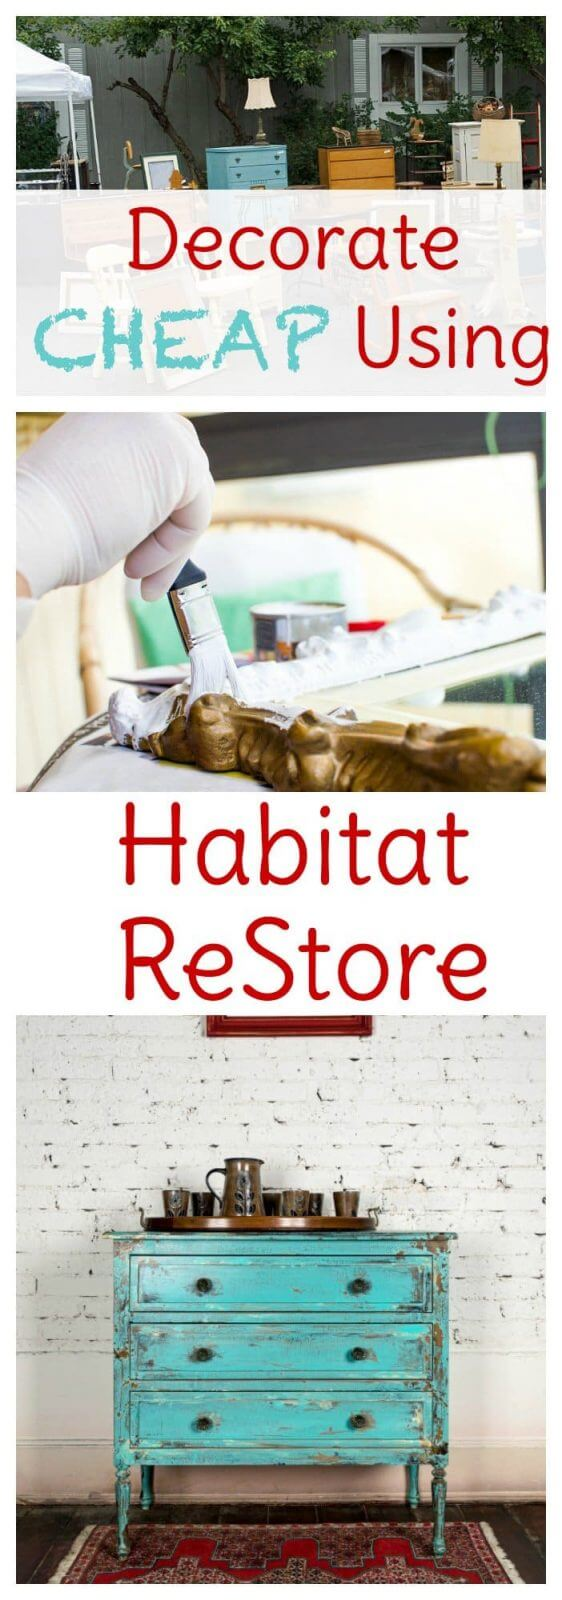 How to Decorate Your Home Using the Habitat ReStore